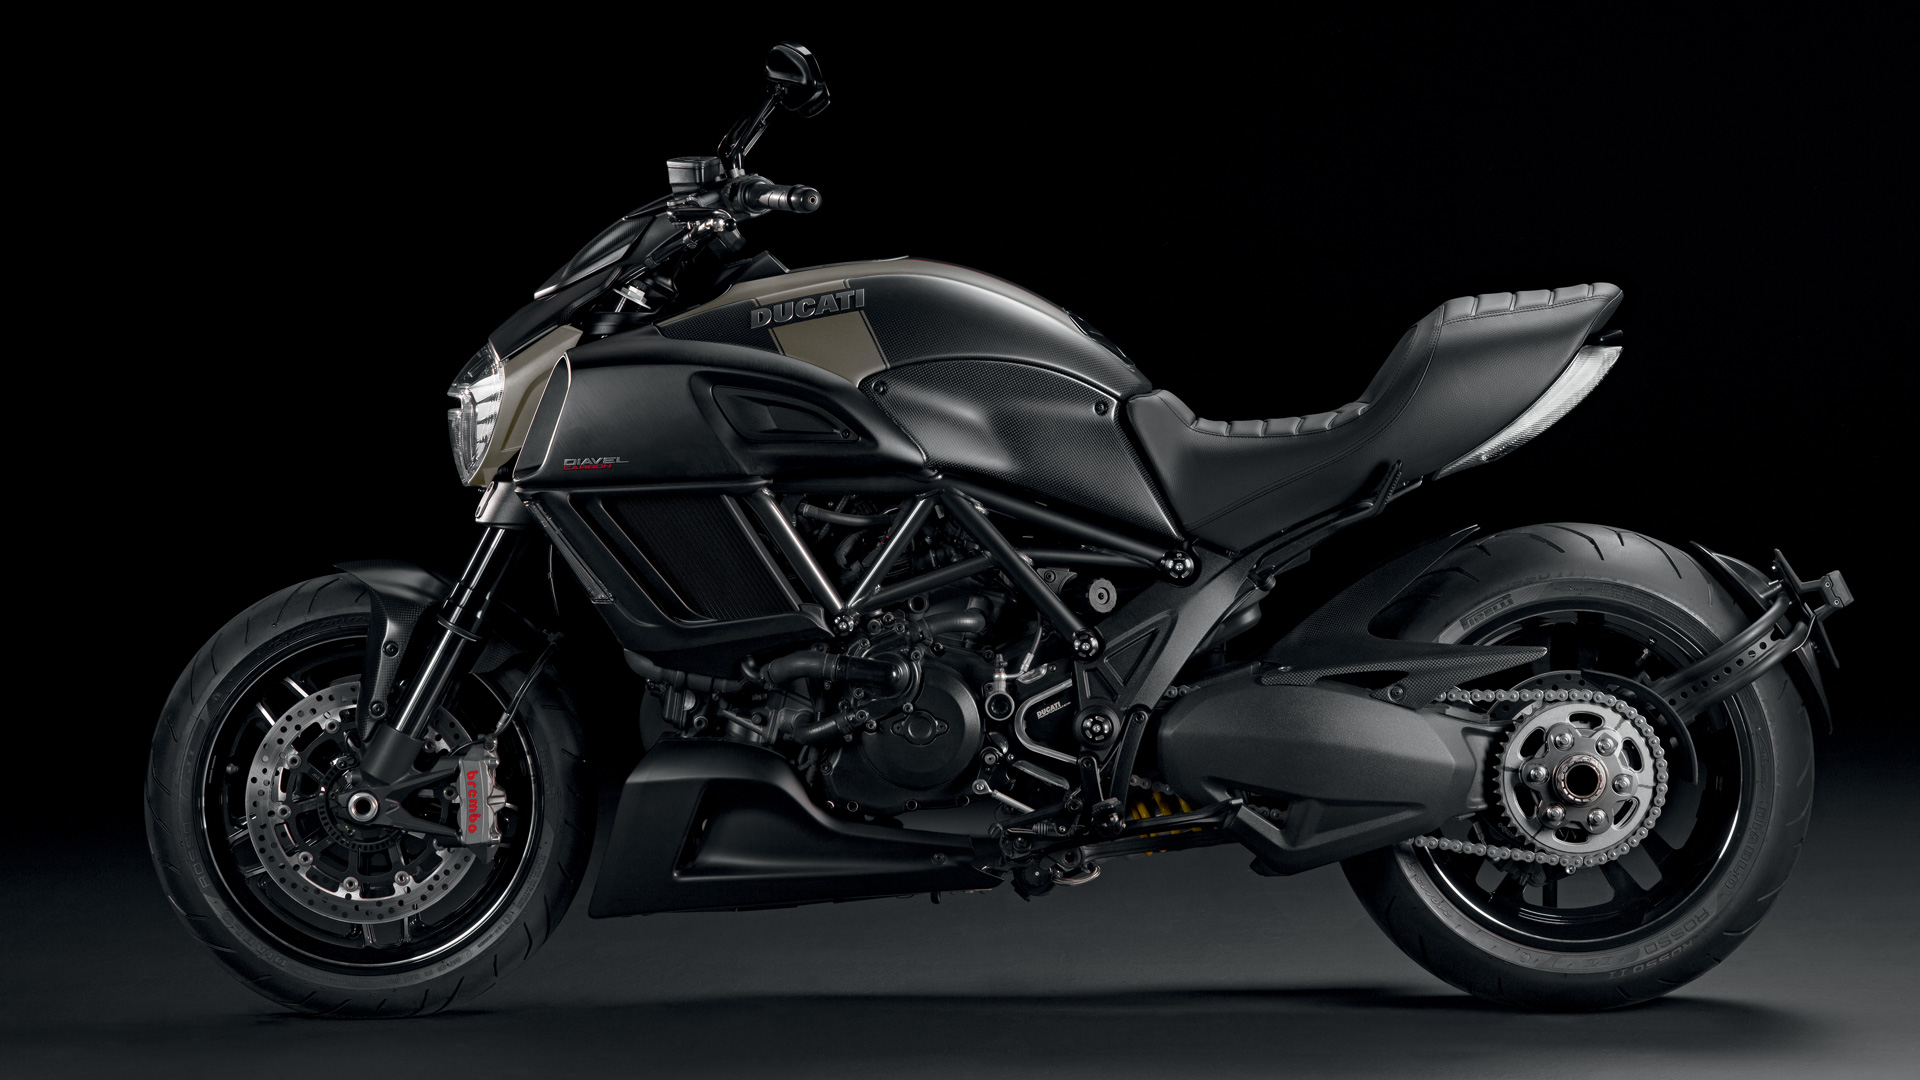 Ducati Diavel Sport Cruiser Bikes With Unique Style